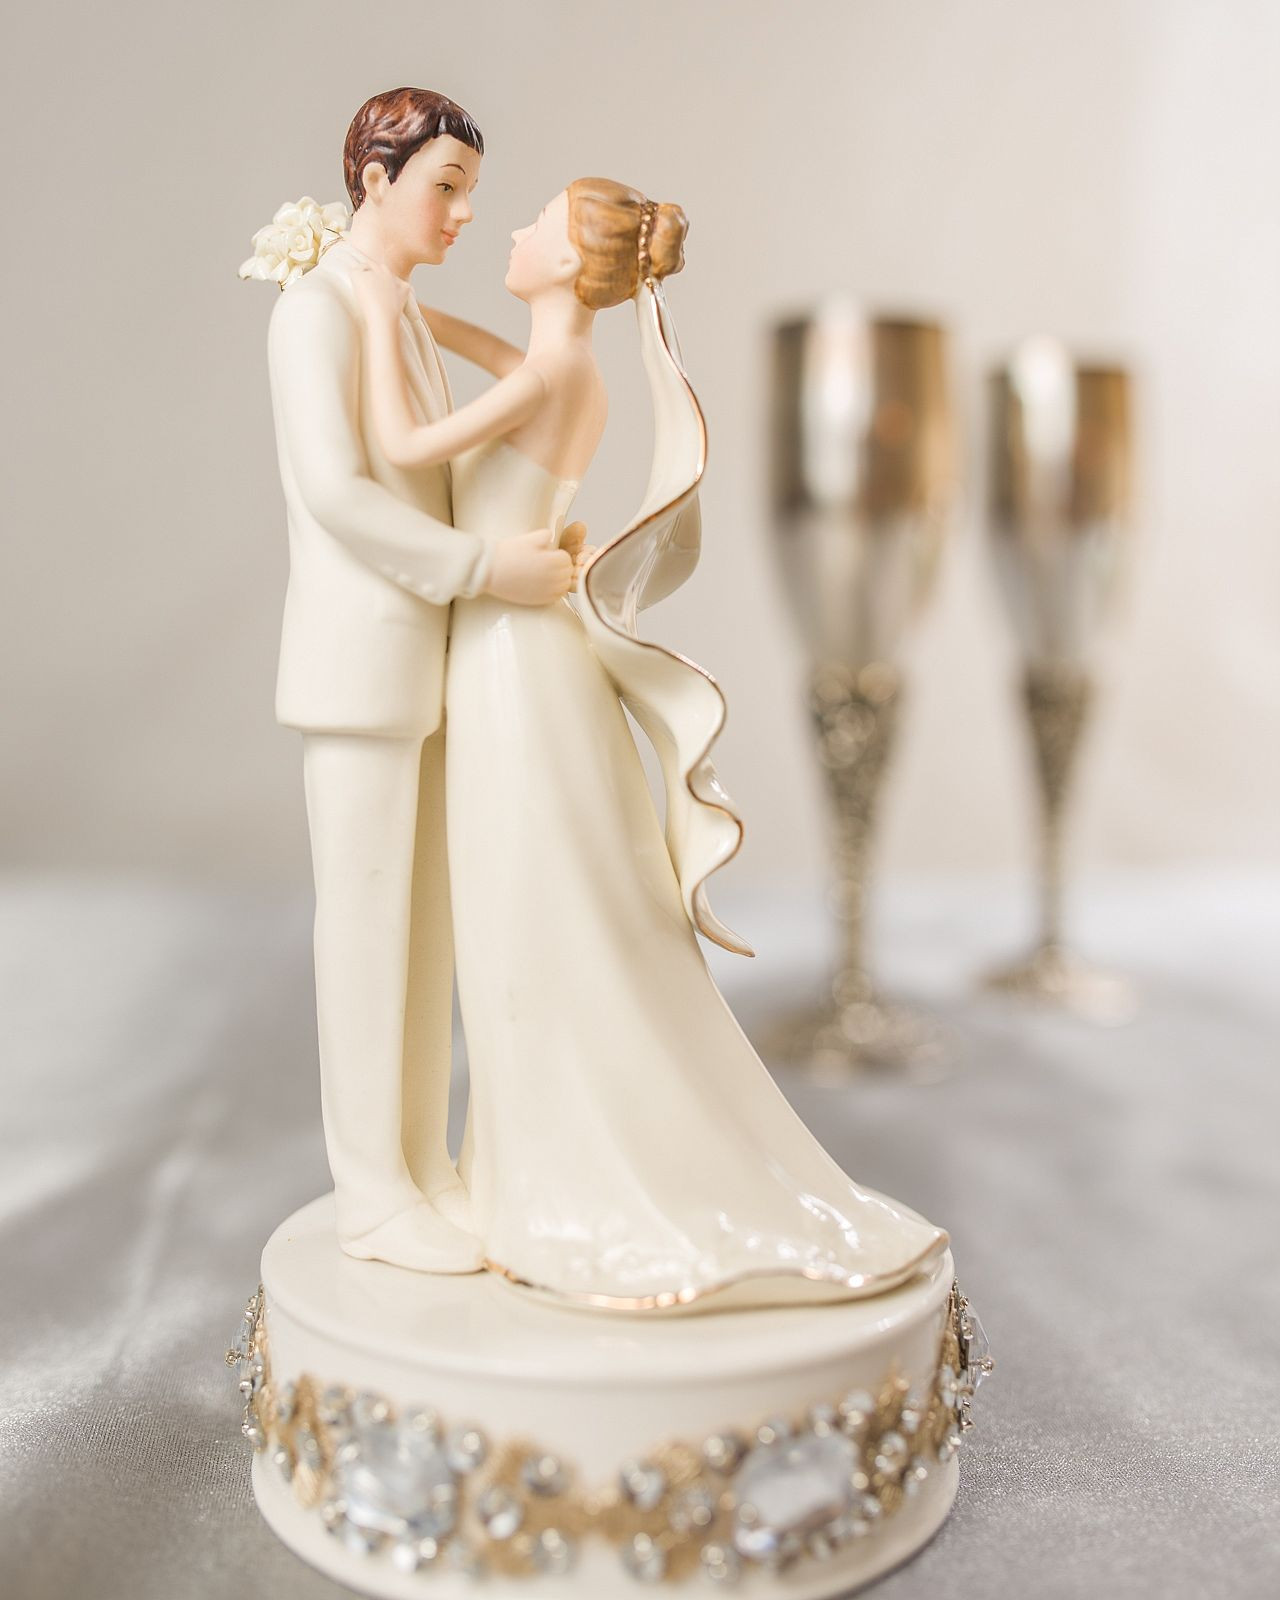 Bride And Groom Toppers For Wedding Cakes  Glam f White Porcelain Bride and Groom Wedding Cake